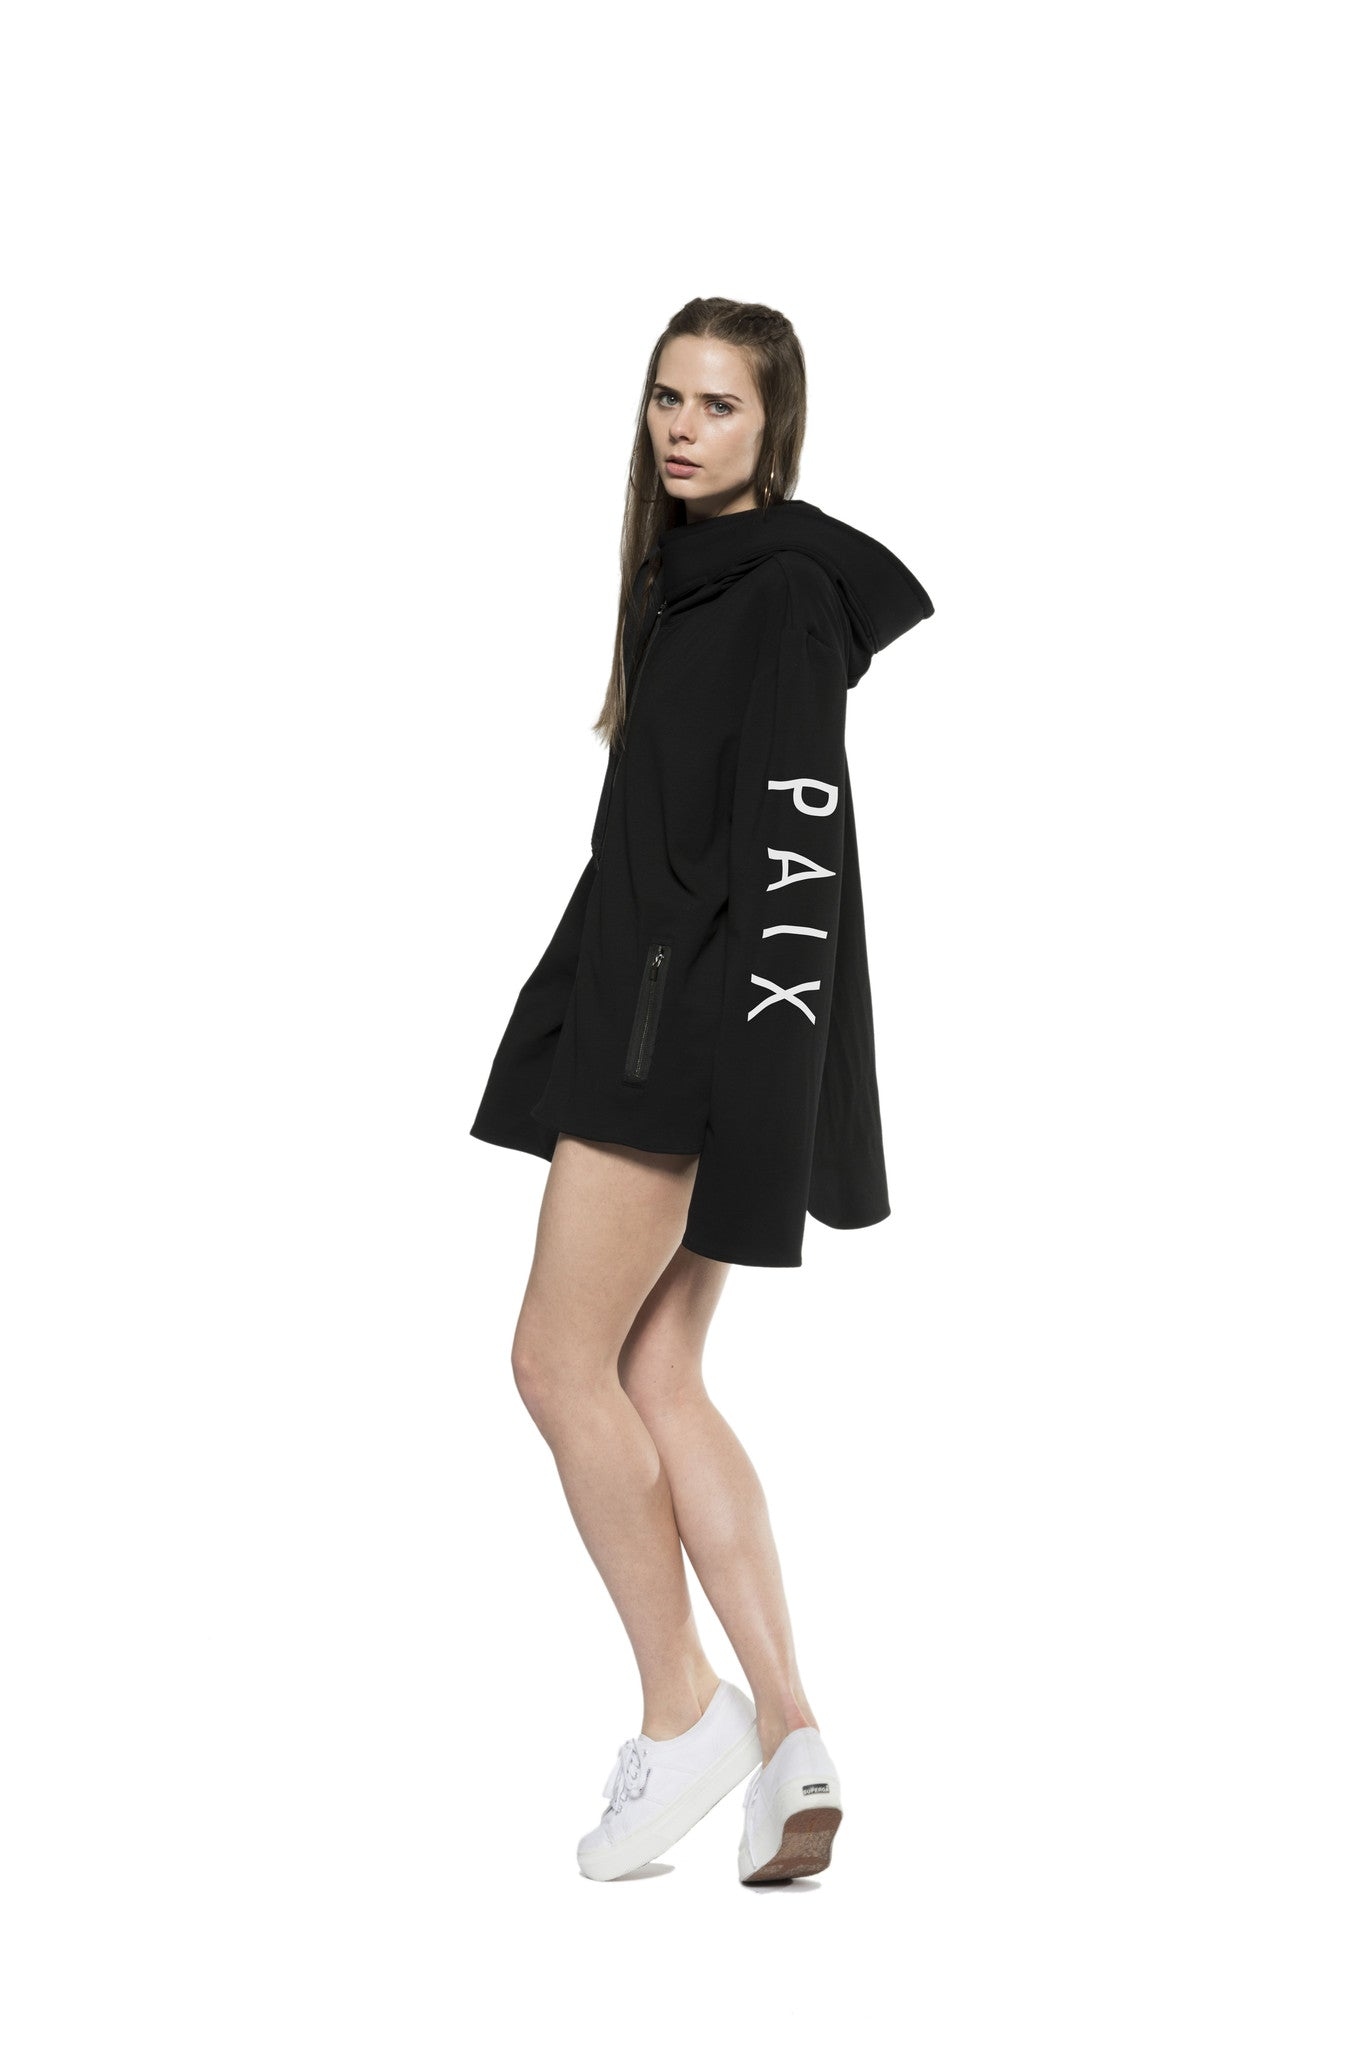 NVII - PAVATI PEACE HOODIE (CHOOSE YOUR LANGUAGE) - NOMAD VII X ANNE BOWEN